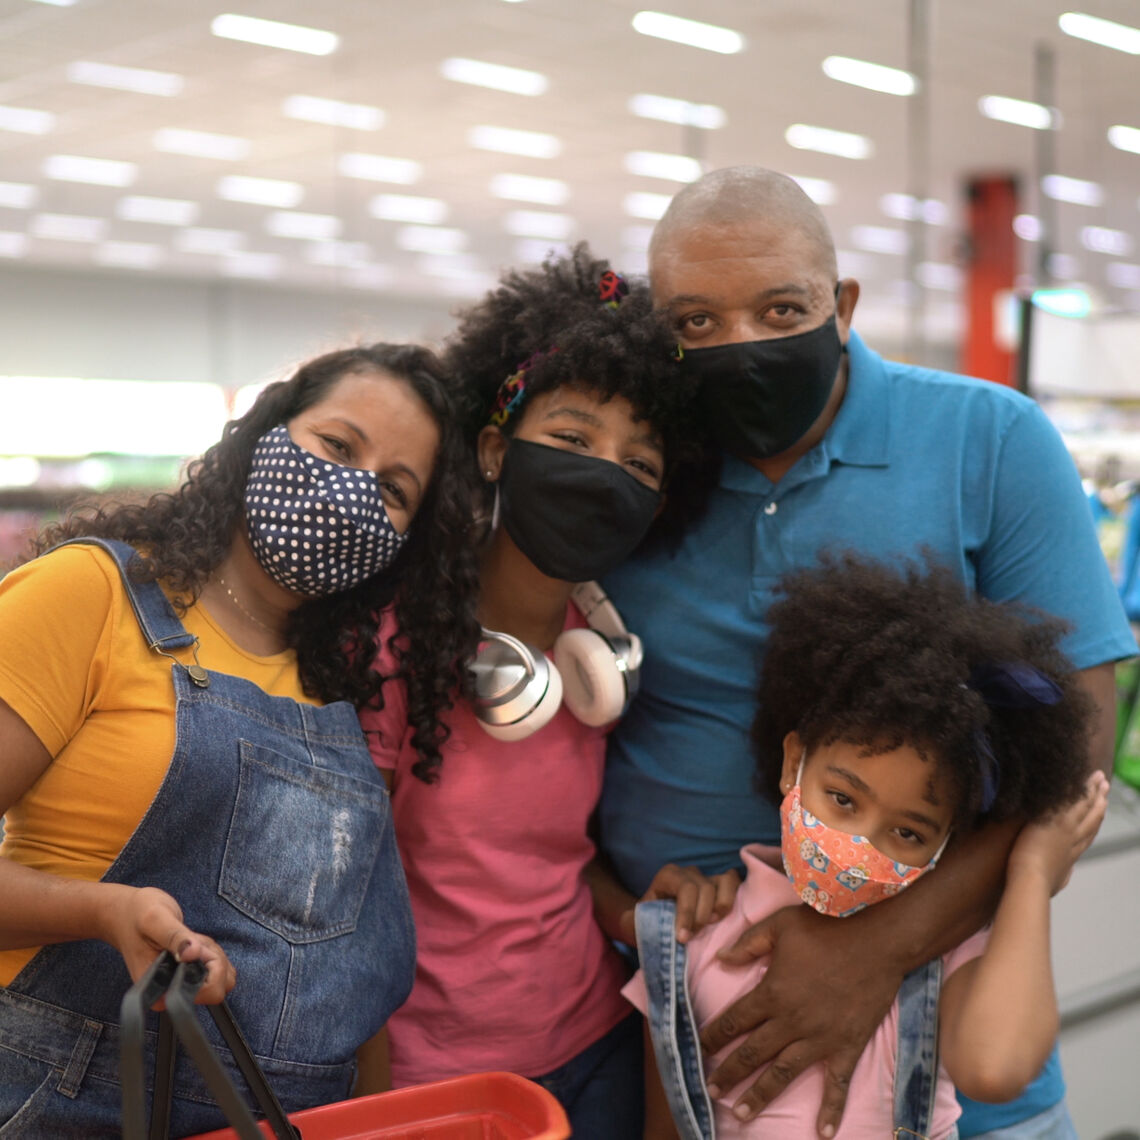 Family with two kids posing for a photo in the grocery store, with masks on